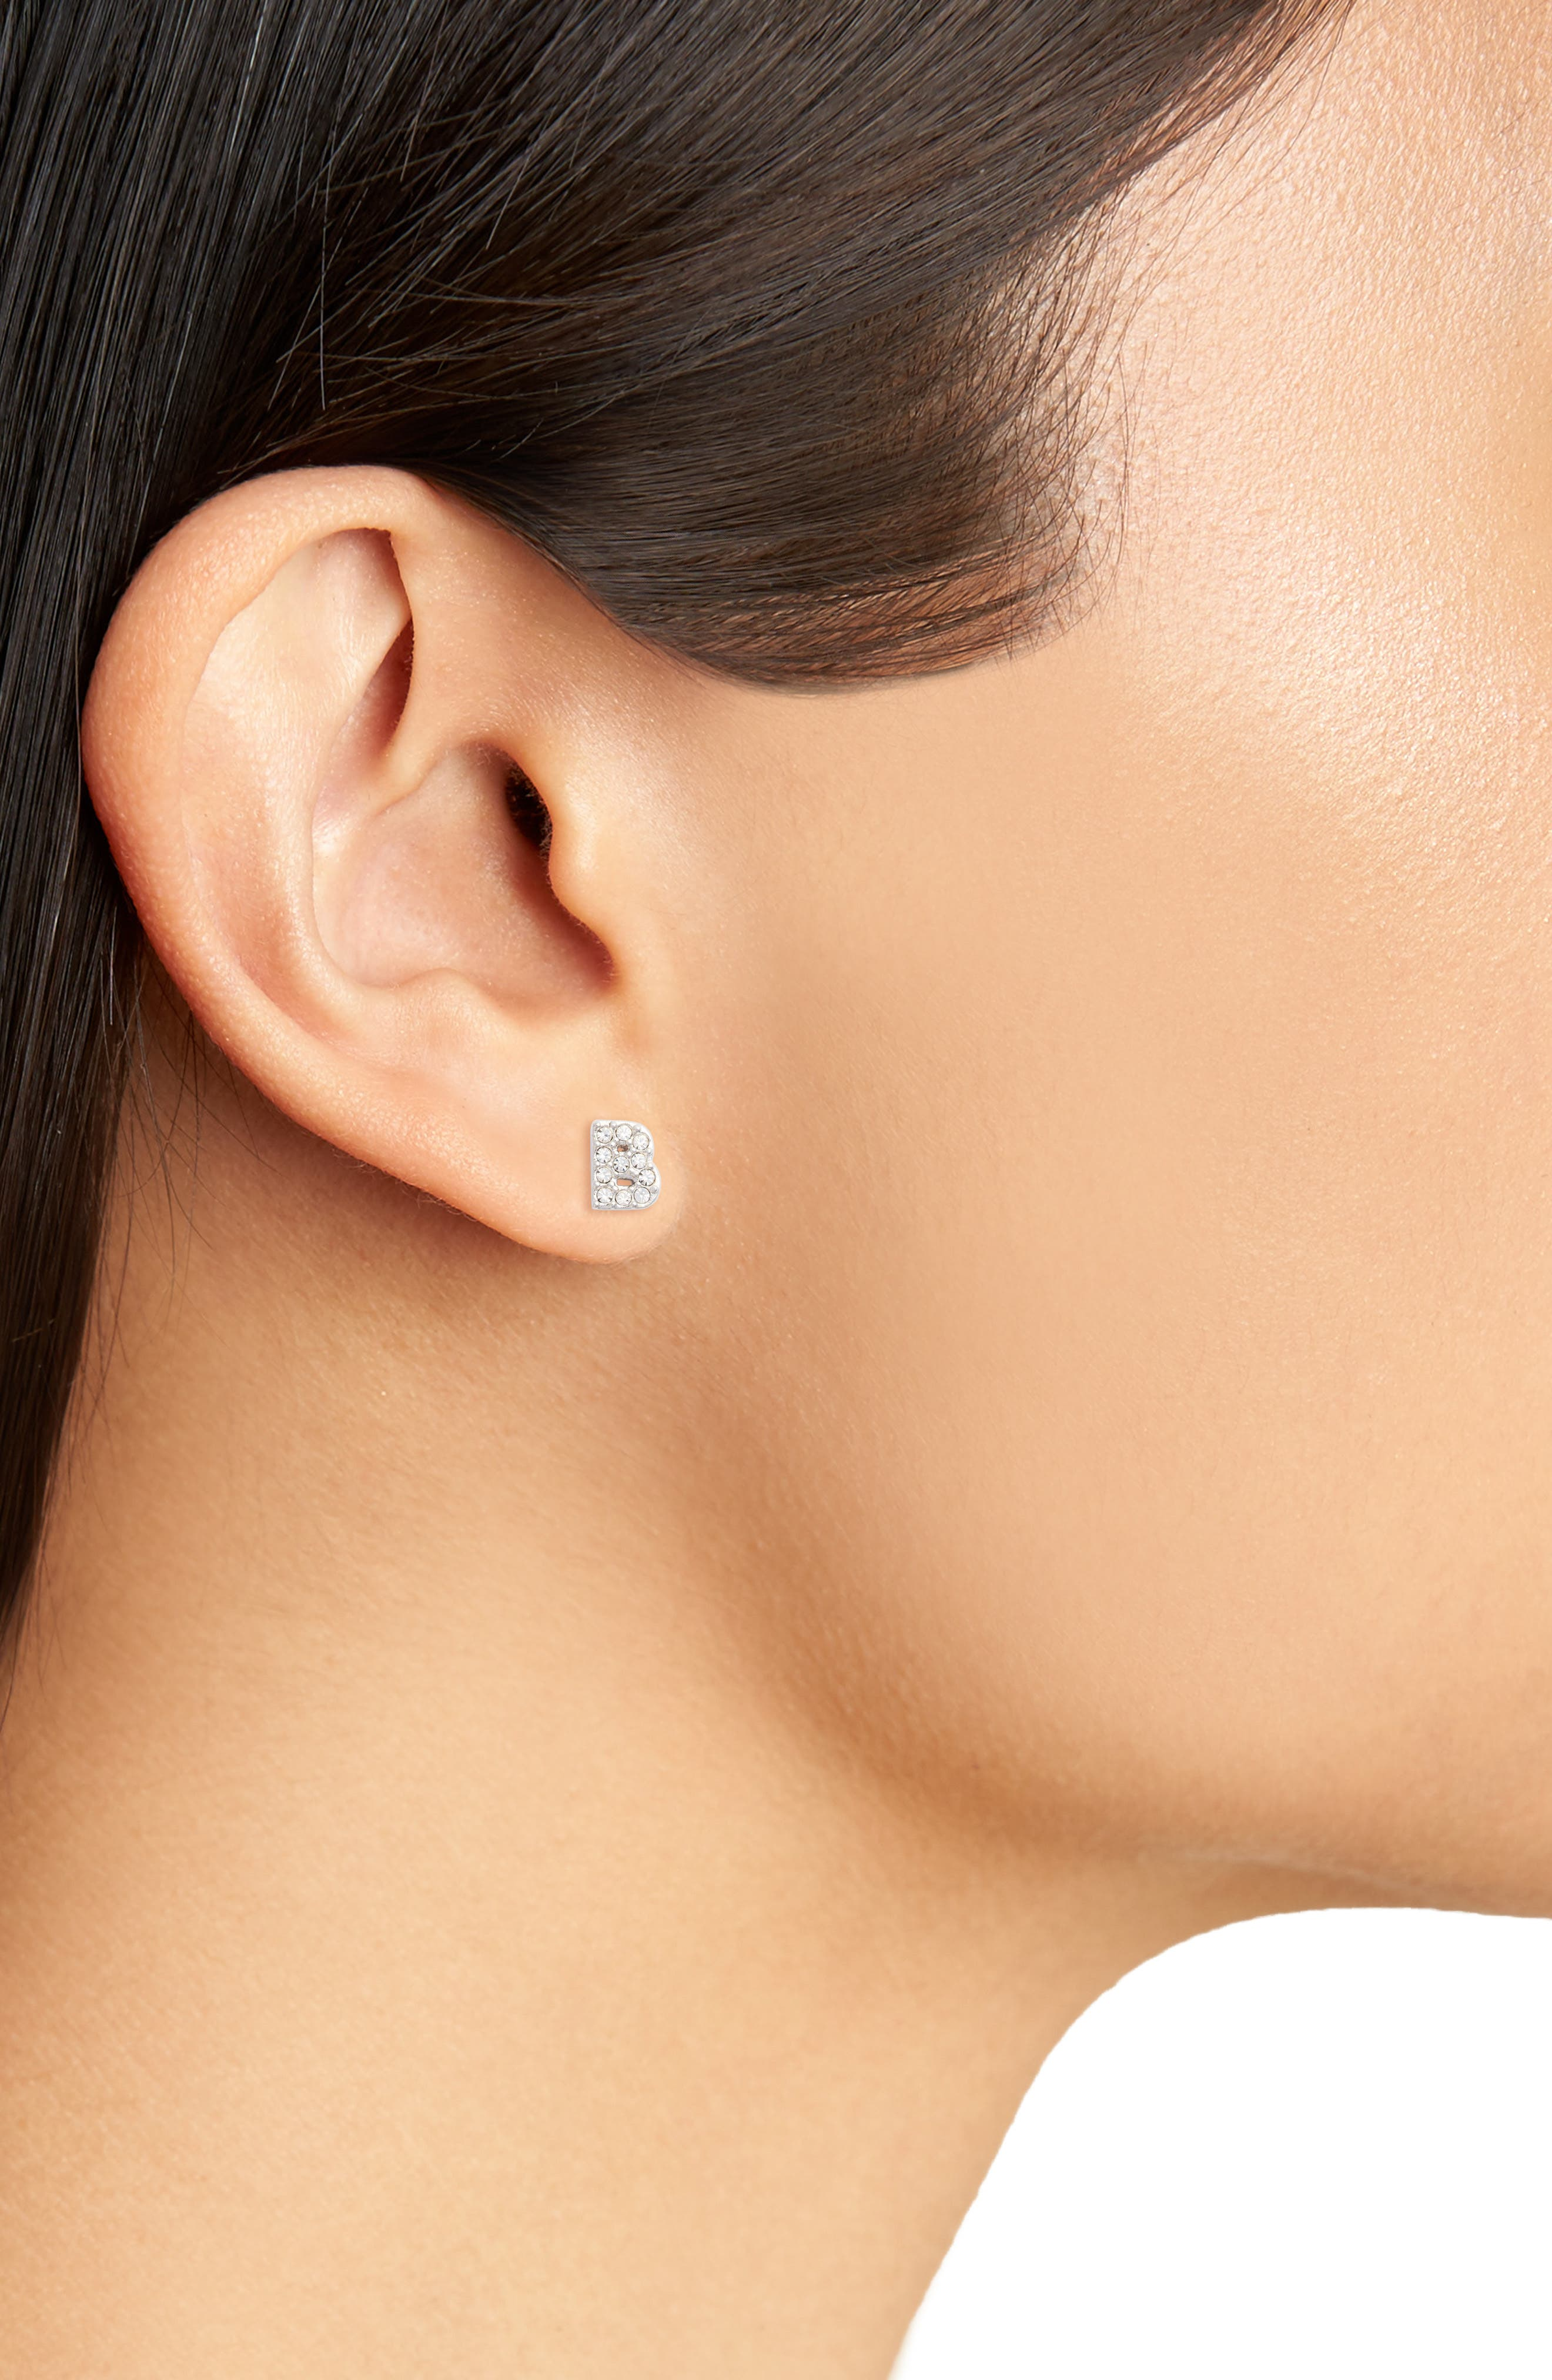 NADRI,                             Initial Mismatched Stud Earrings,                             Alternate thumbnail 2, color,                             SILVER - B